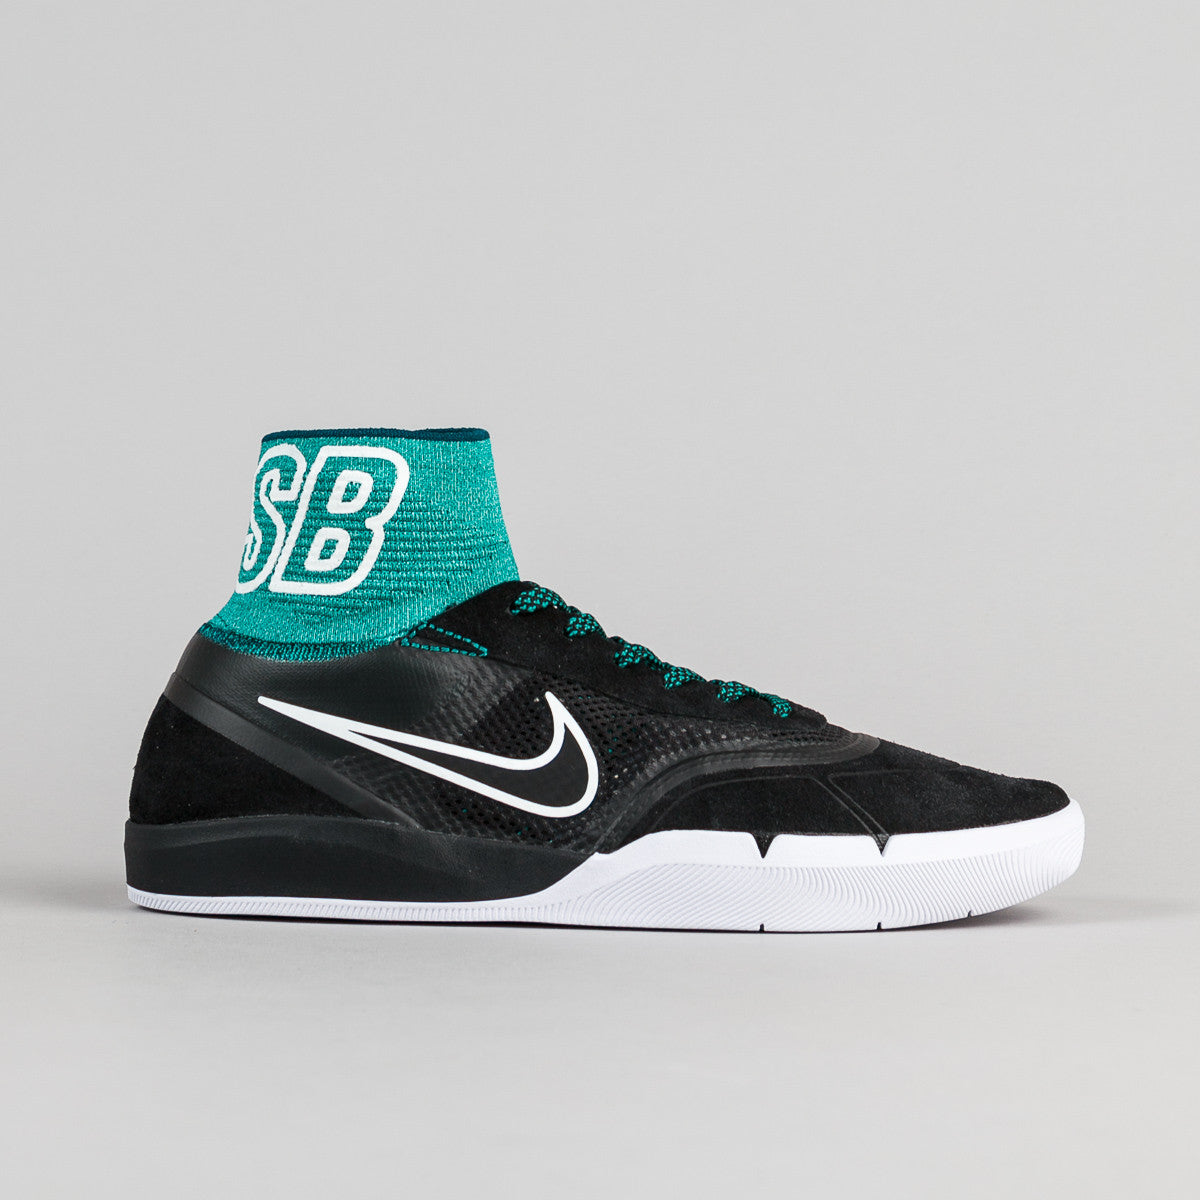 Nike SB Koston 3 Hyperfeel Shoes - Black / Black - Rio Teal - White | Flatspot